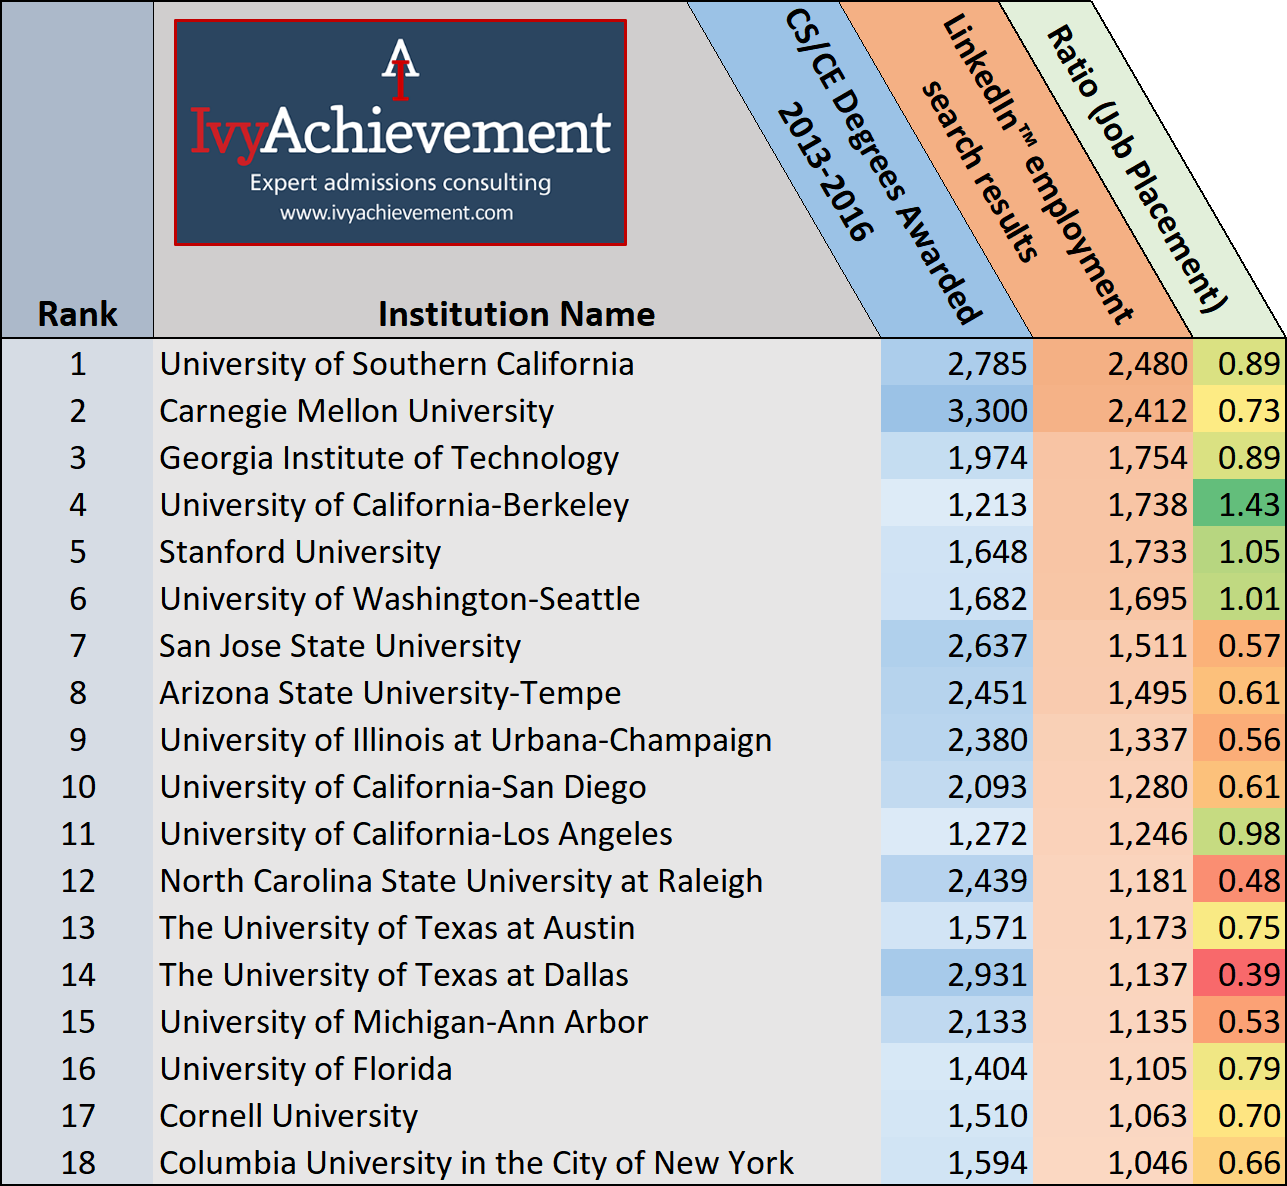 The 2018 IvyAchievement Computer Science Rankings